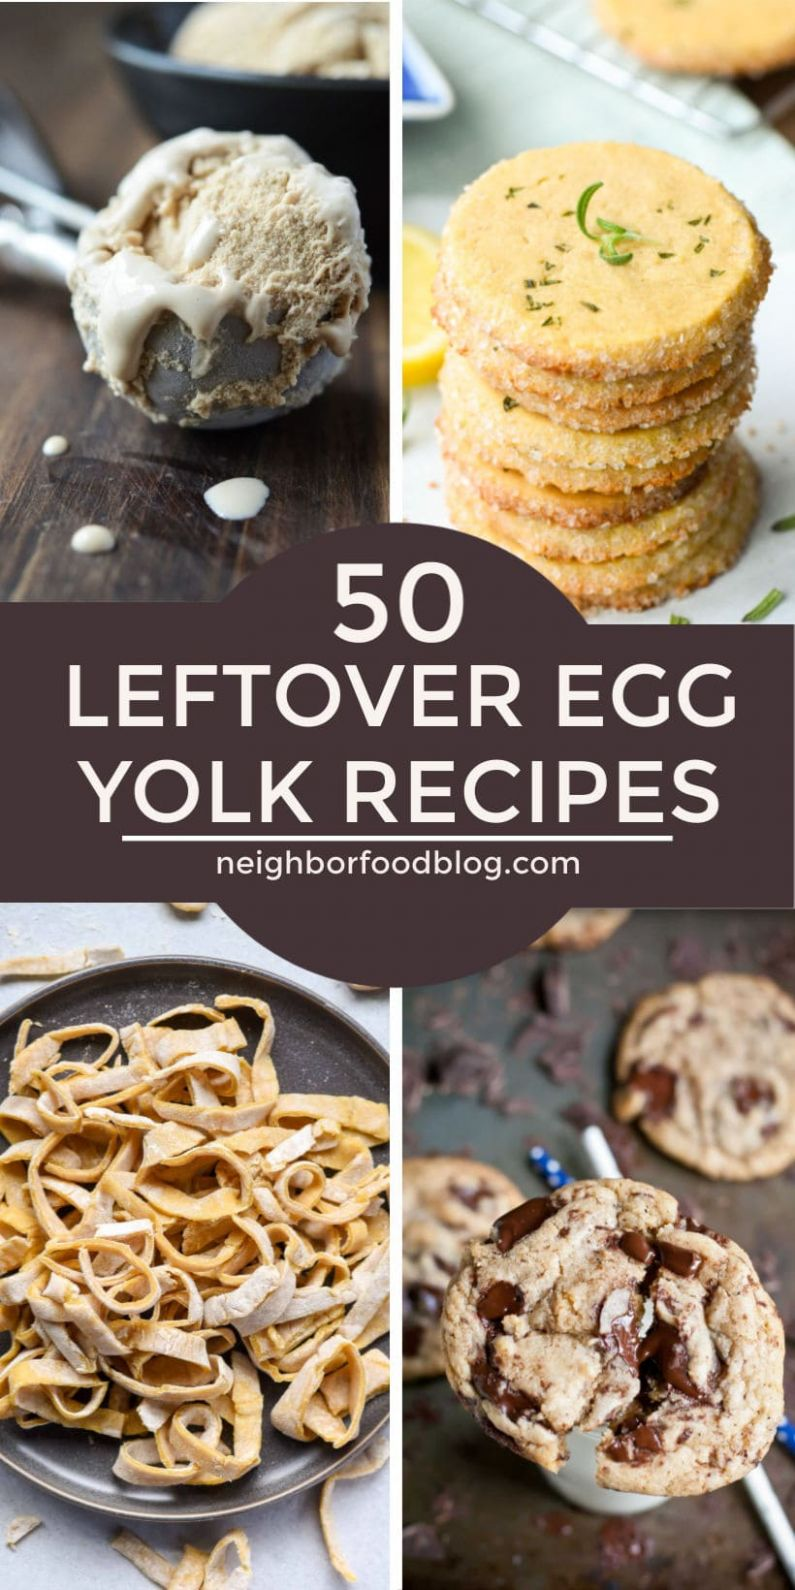 9 Egg Yolk Recipes for Leftover Egg Yolks | NeighborFood - Recipes With Egg Yolks